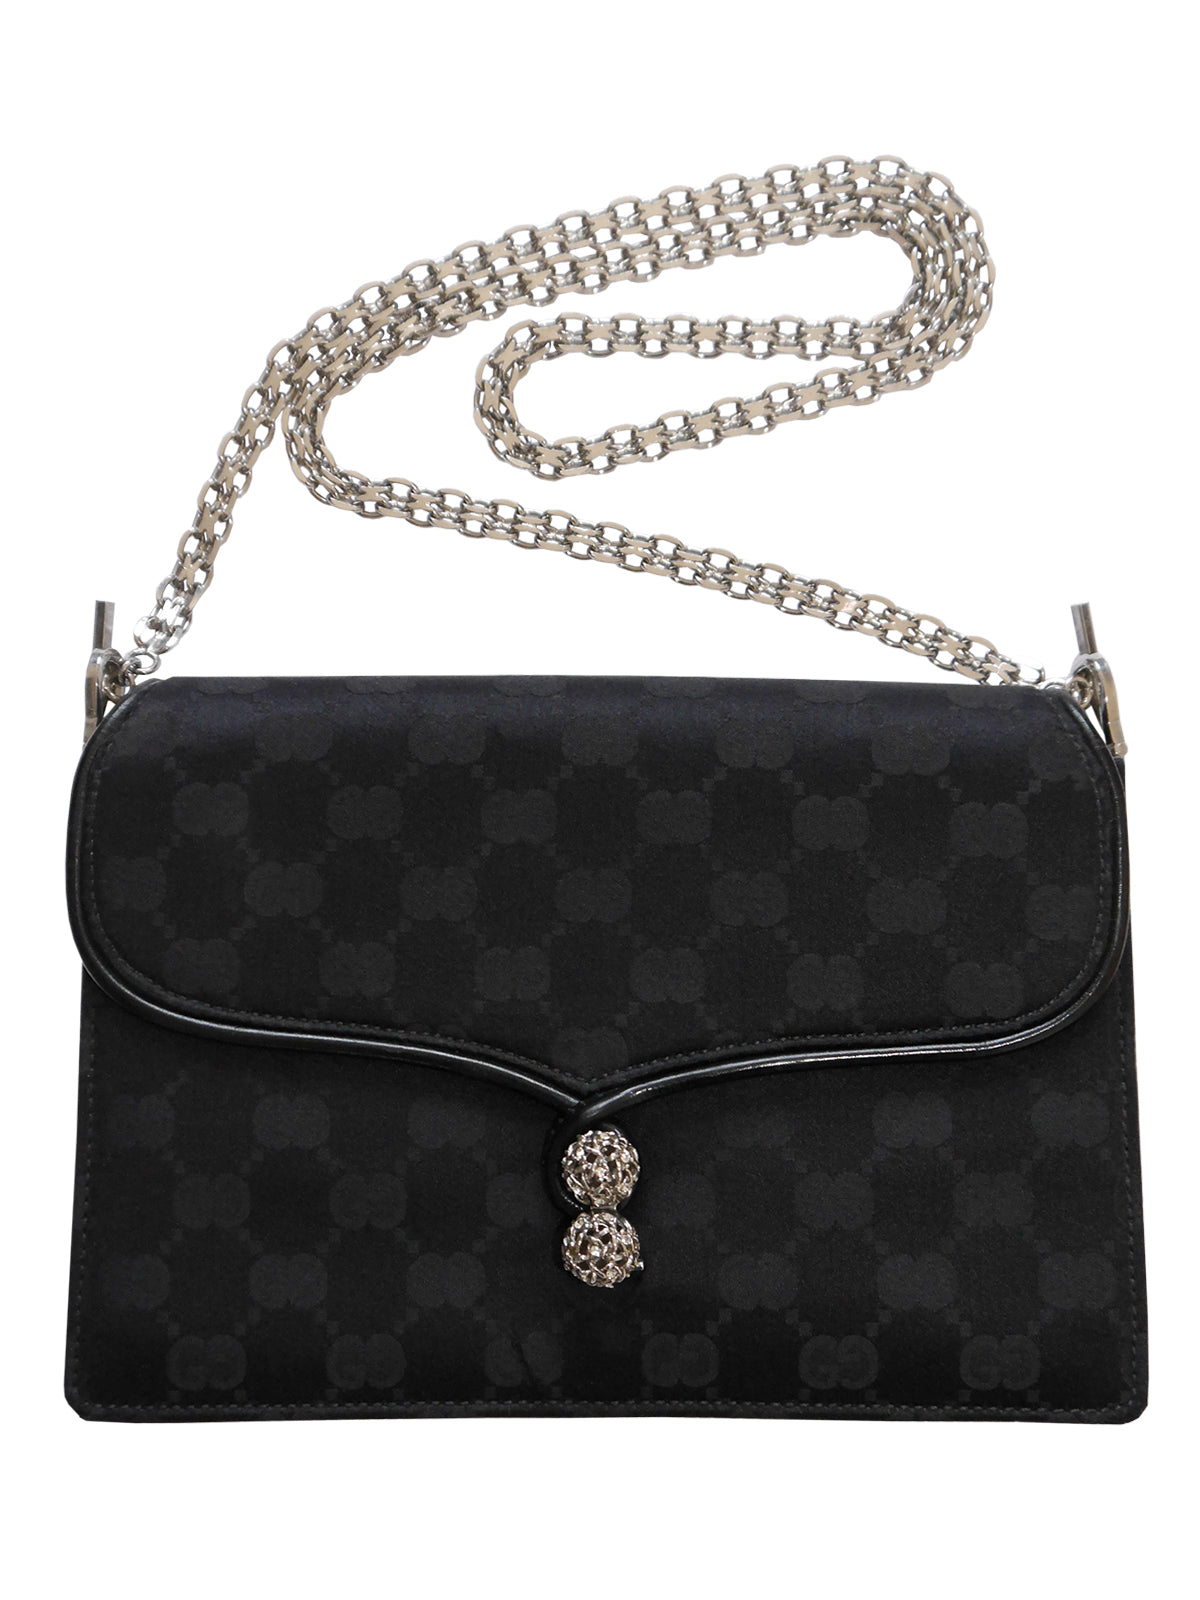 Sold - GUCCI Rare Vintage Monogram Evening Shoulder Bag Clutch